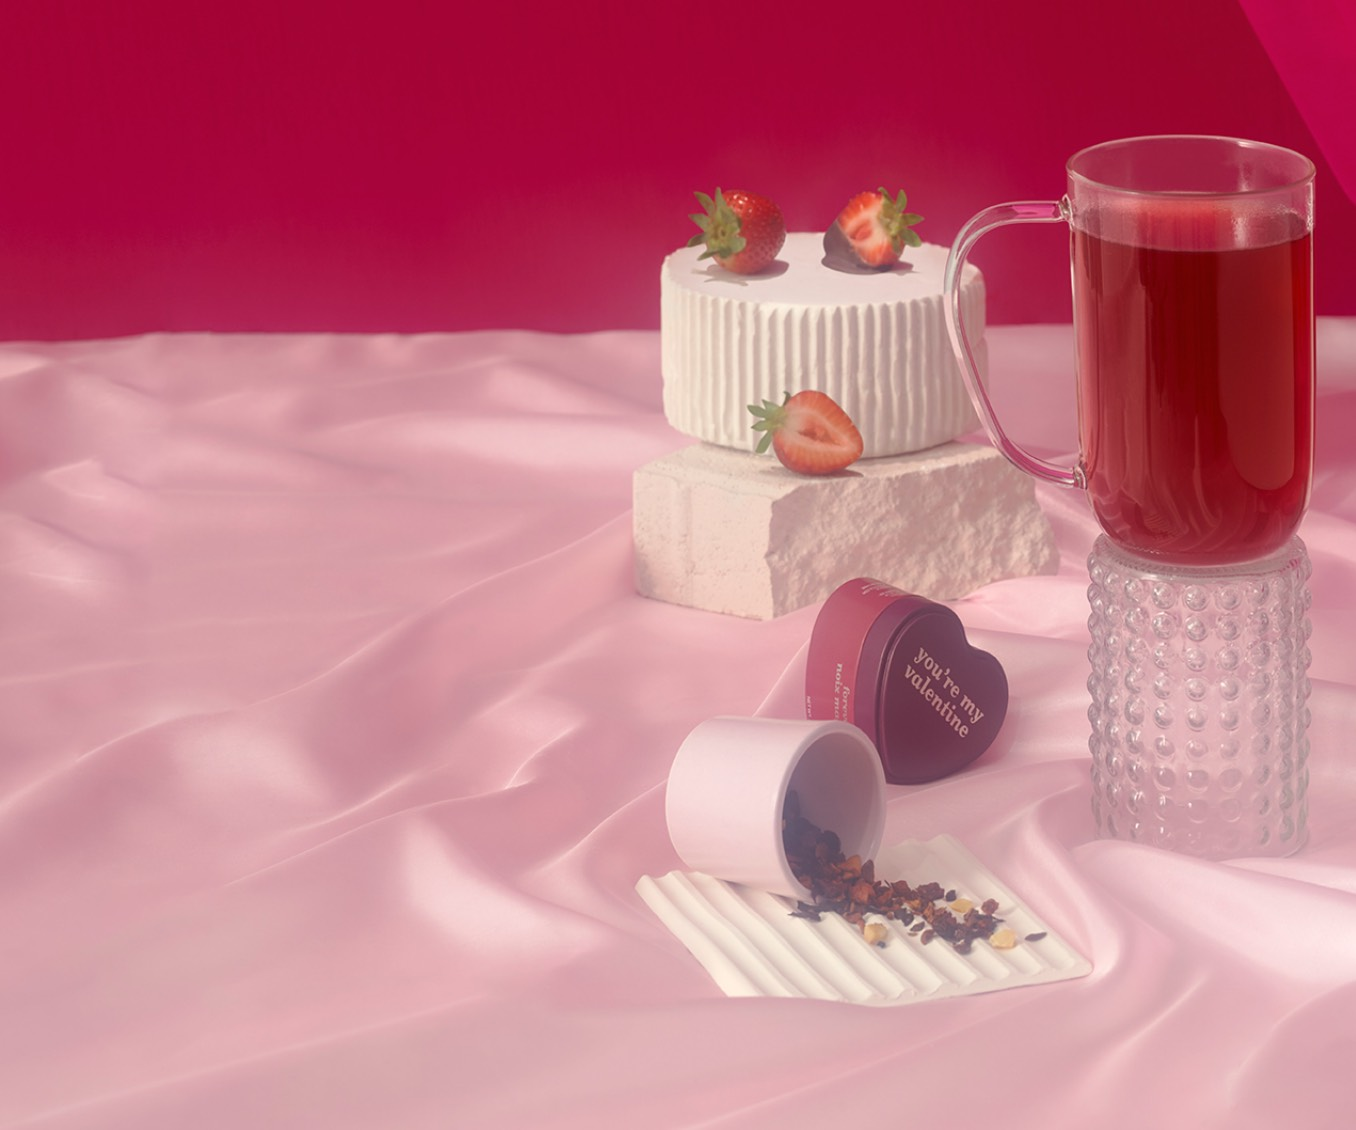 A Nordic mug filled with tea surrounded by strawberries and heart-shaped tins.